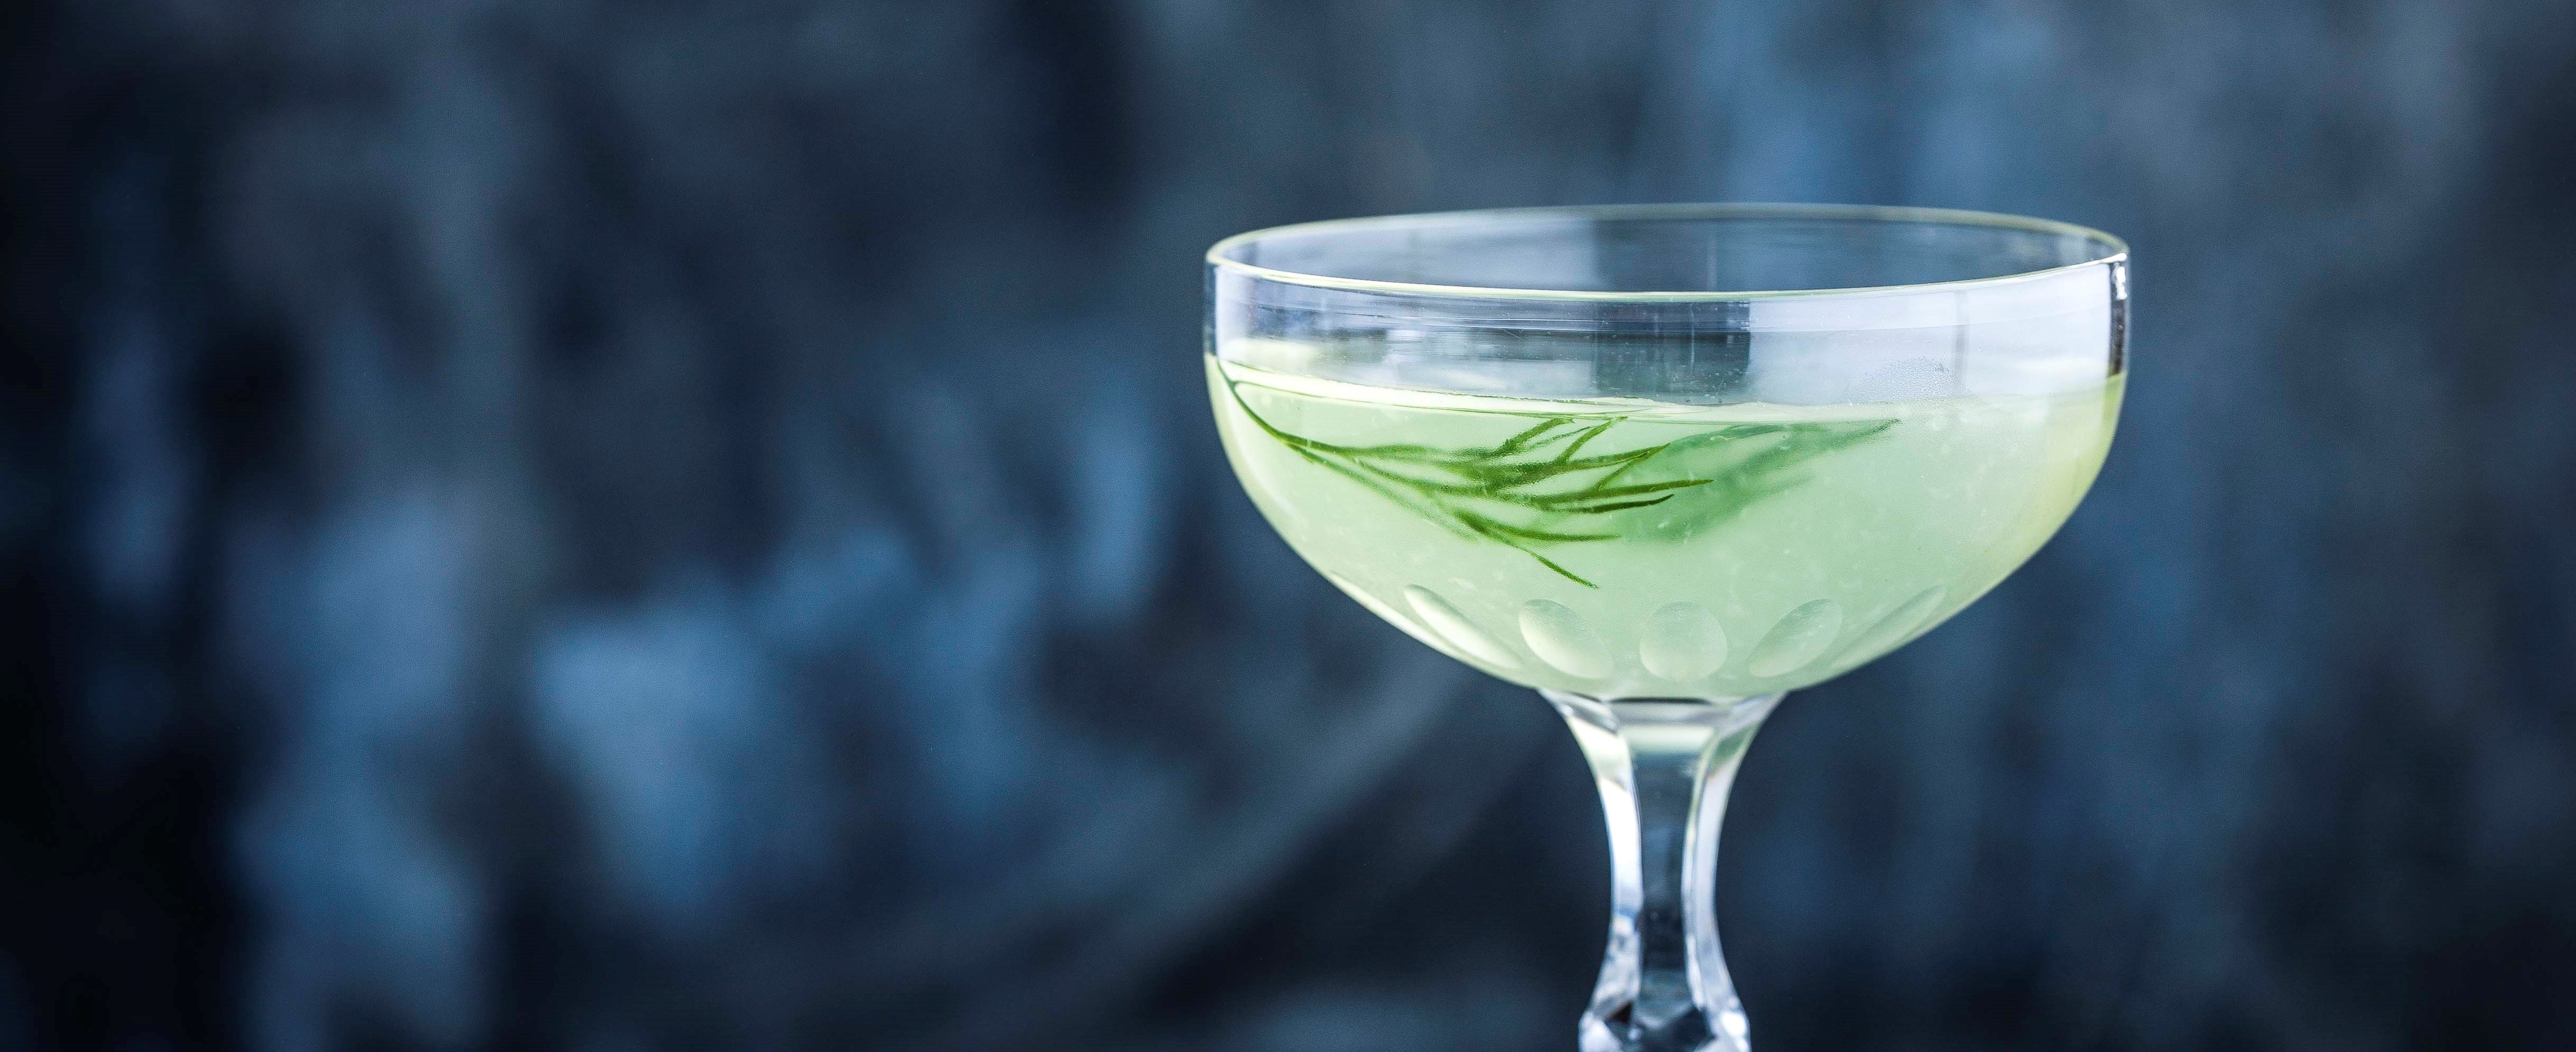 16 Gin Cocktails Recipes For Classic Gin Based Cocktails East India gimlet